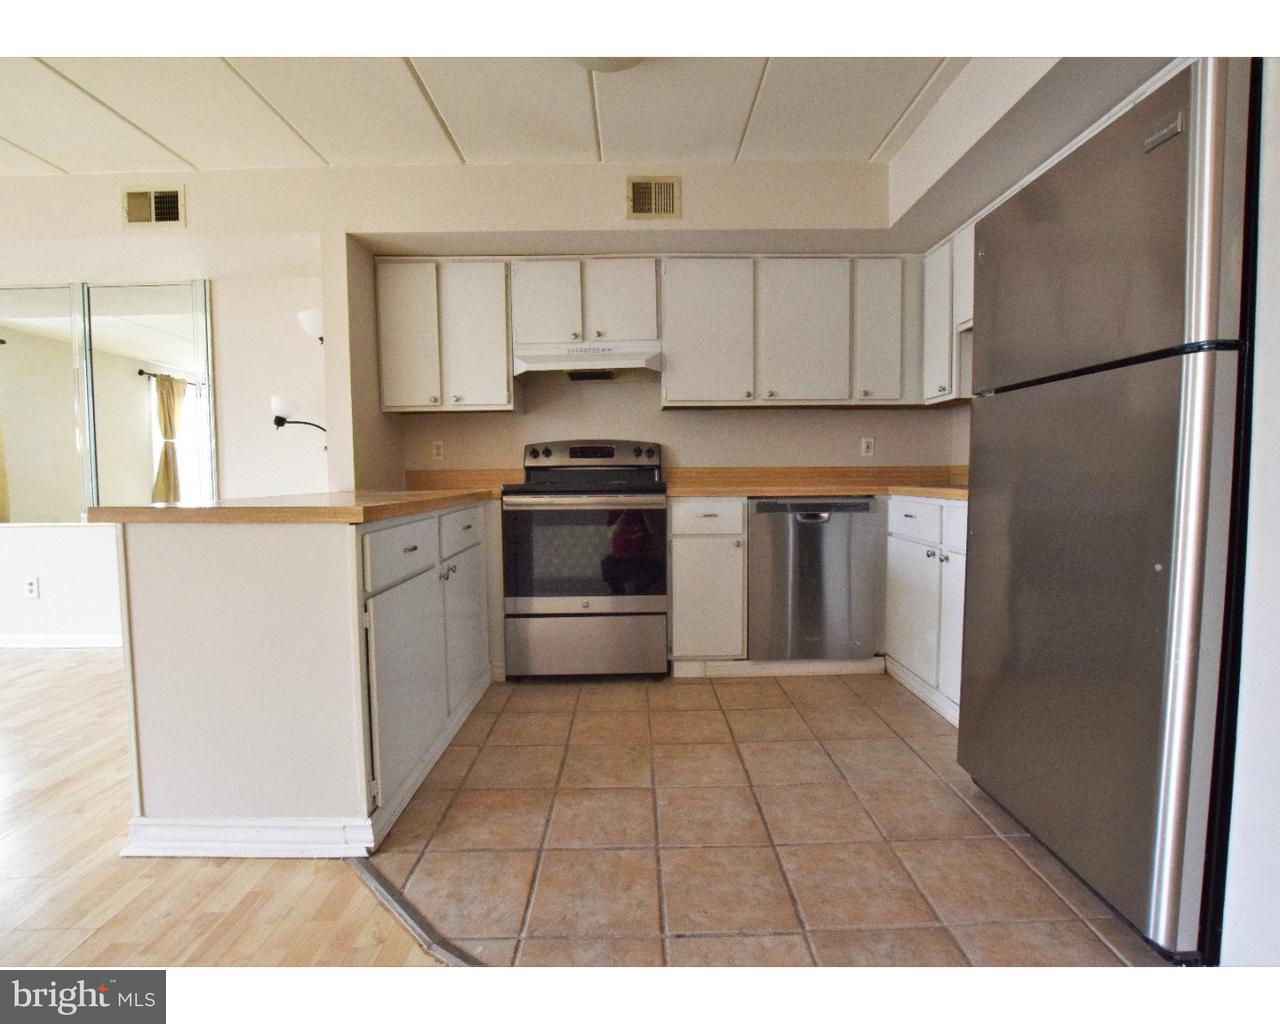 216 W CHESTER PIKE, RIDLEY PARK - Listed at $1,425, RIDLEY PARK